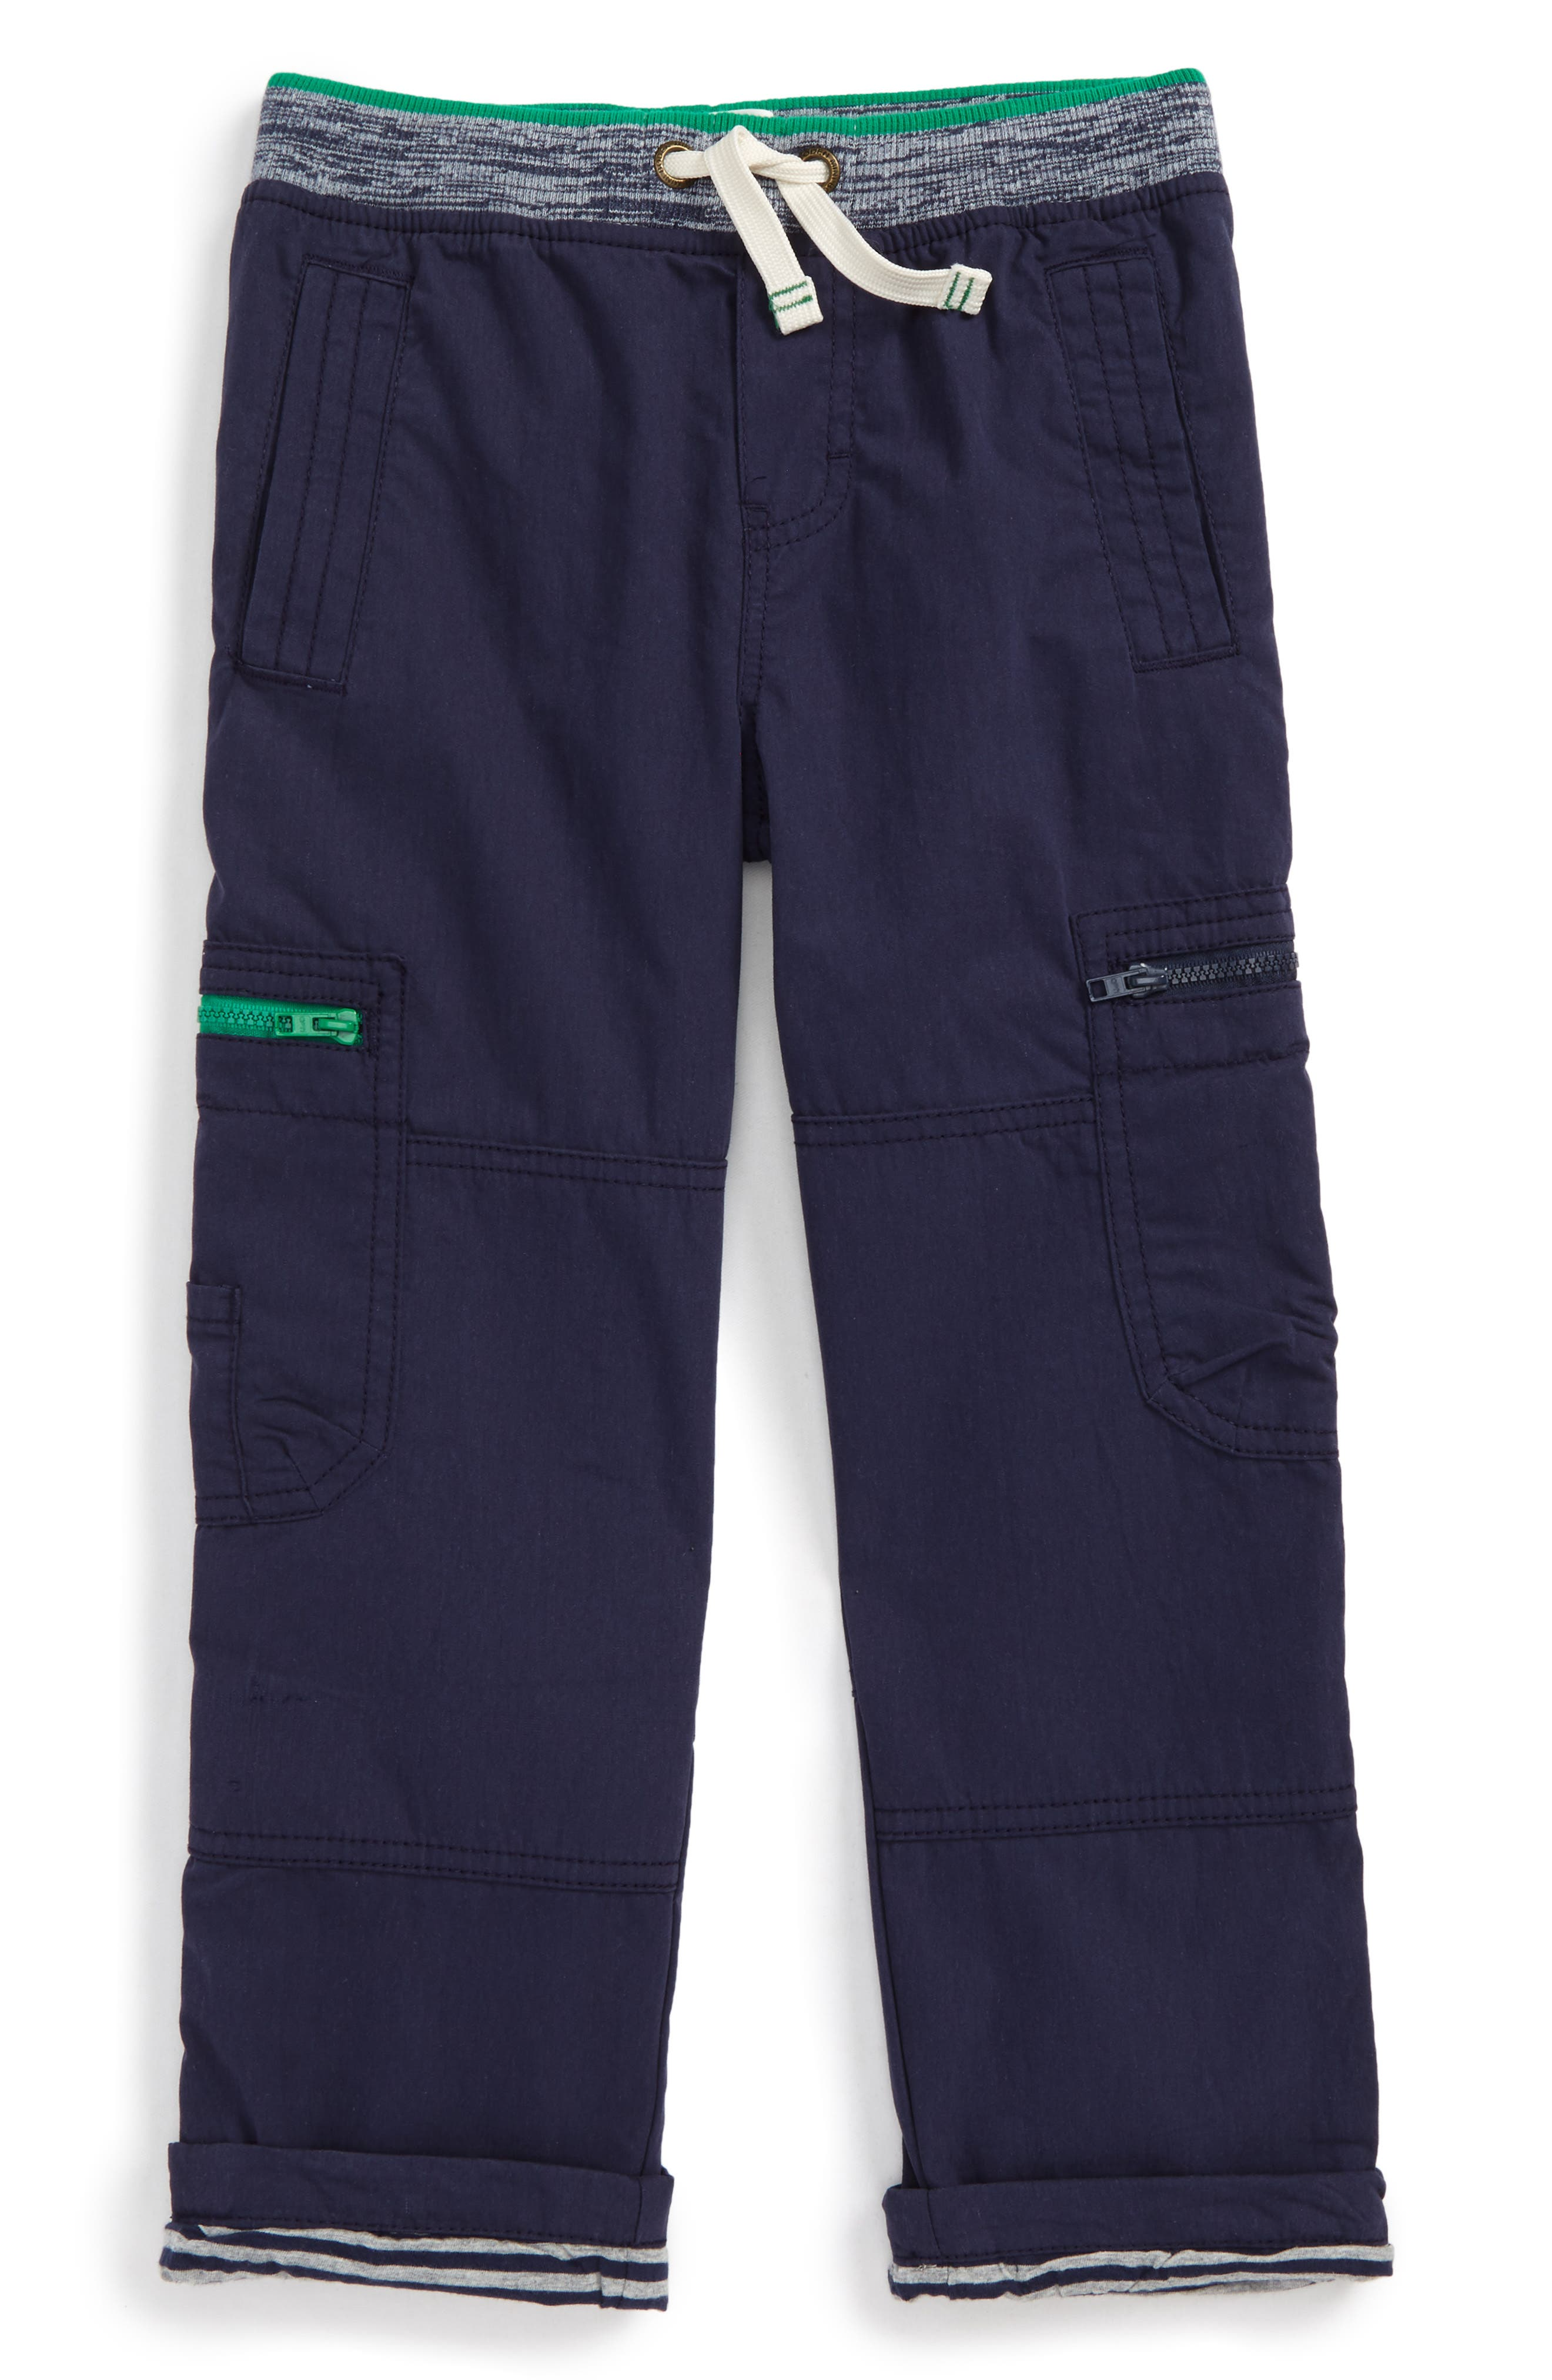 Lined Cargo Pants,                         Main,                         color, Navy